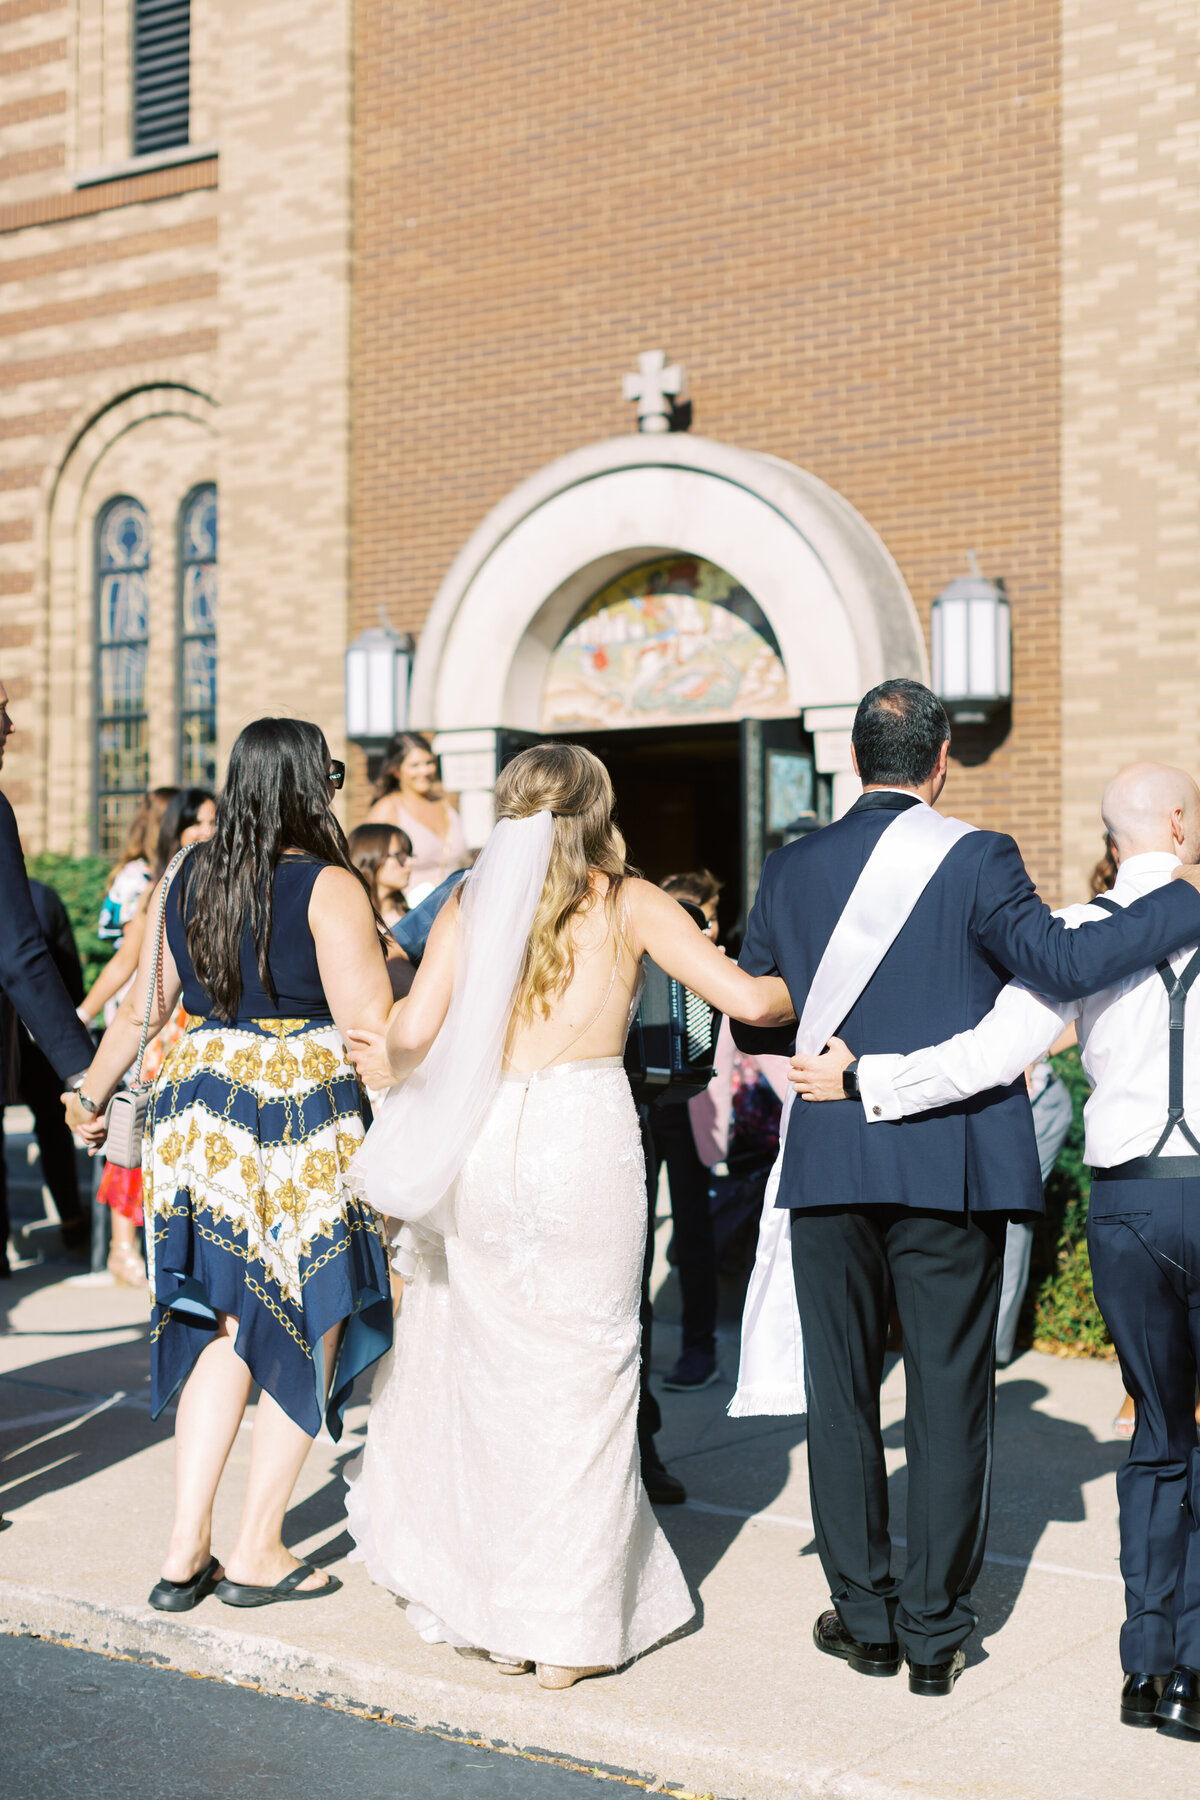 TiffaneyChildsPhotography-ChicagoWeddingPhotographer-Andrea&Pasquale-St.GeorgeWedding-Ceremony-201 (1)